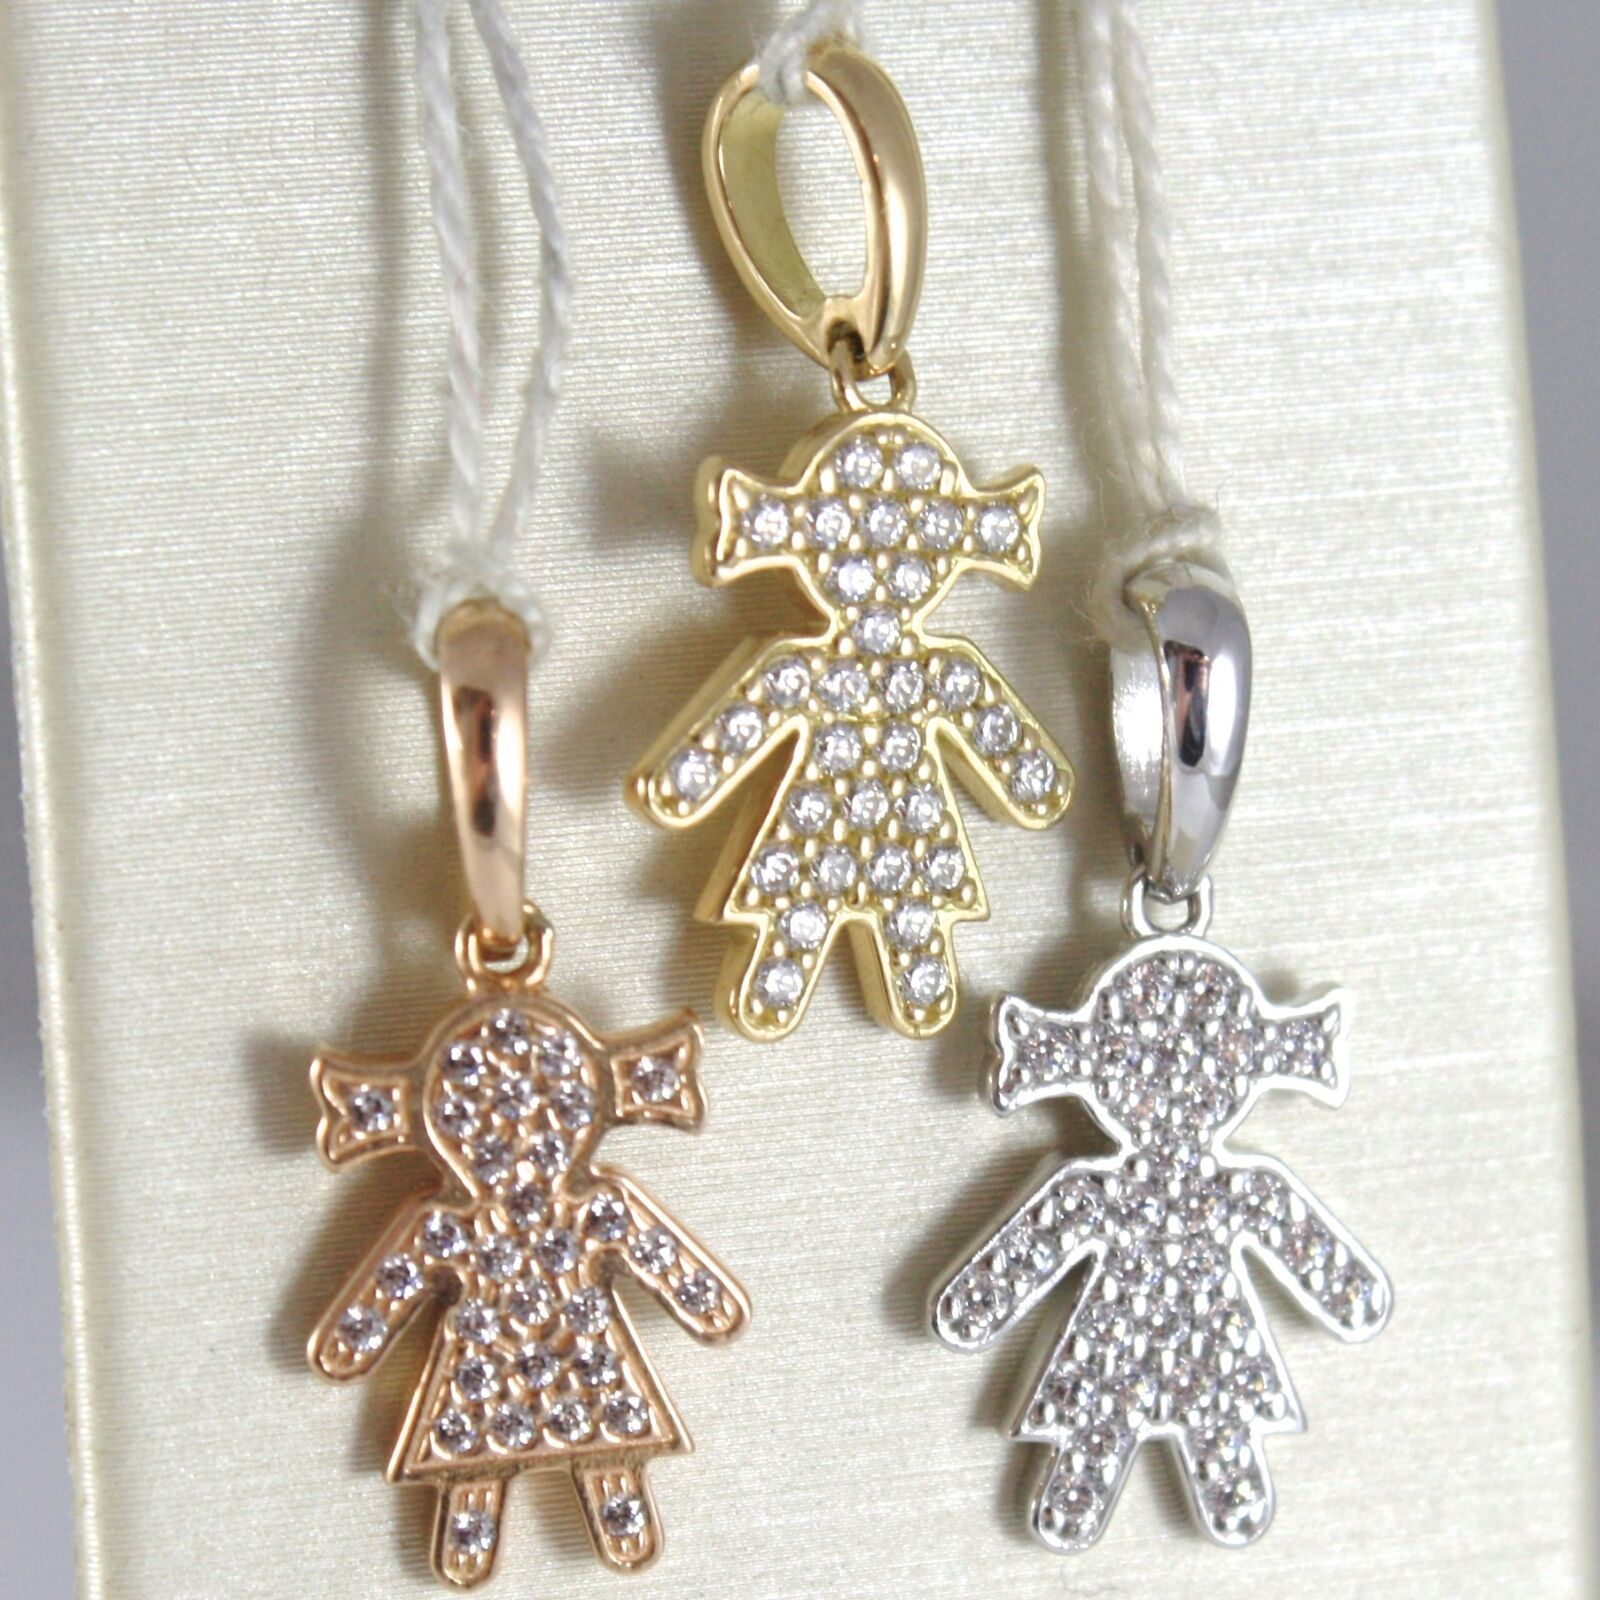 Yellow Gold Pendant, Pink Or White 750 18K, Child, Baby Girl With Zircon, Italy